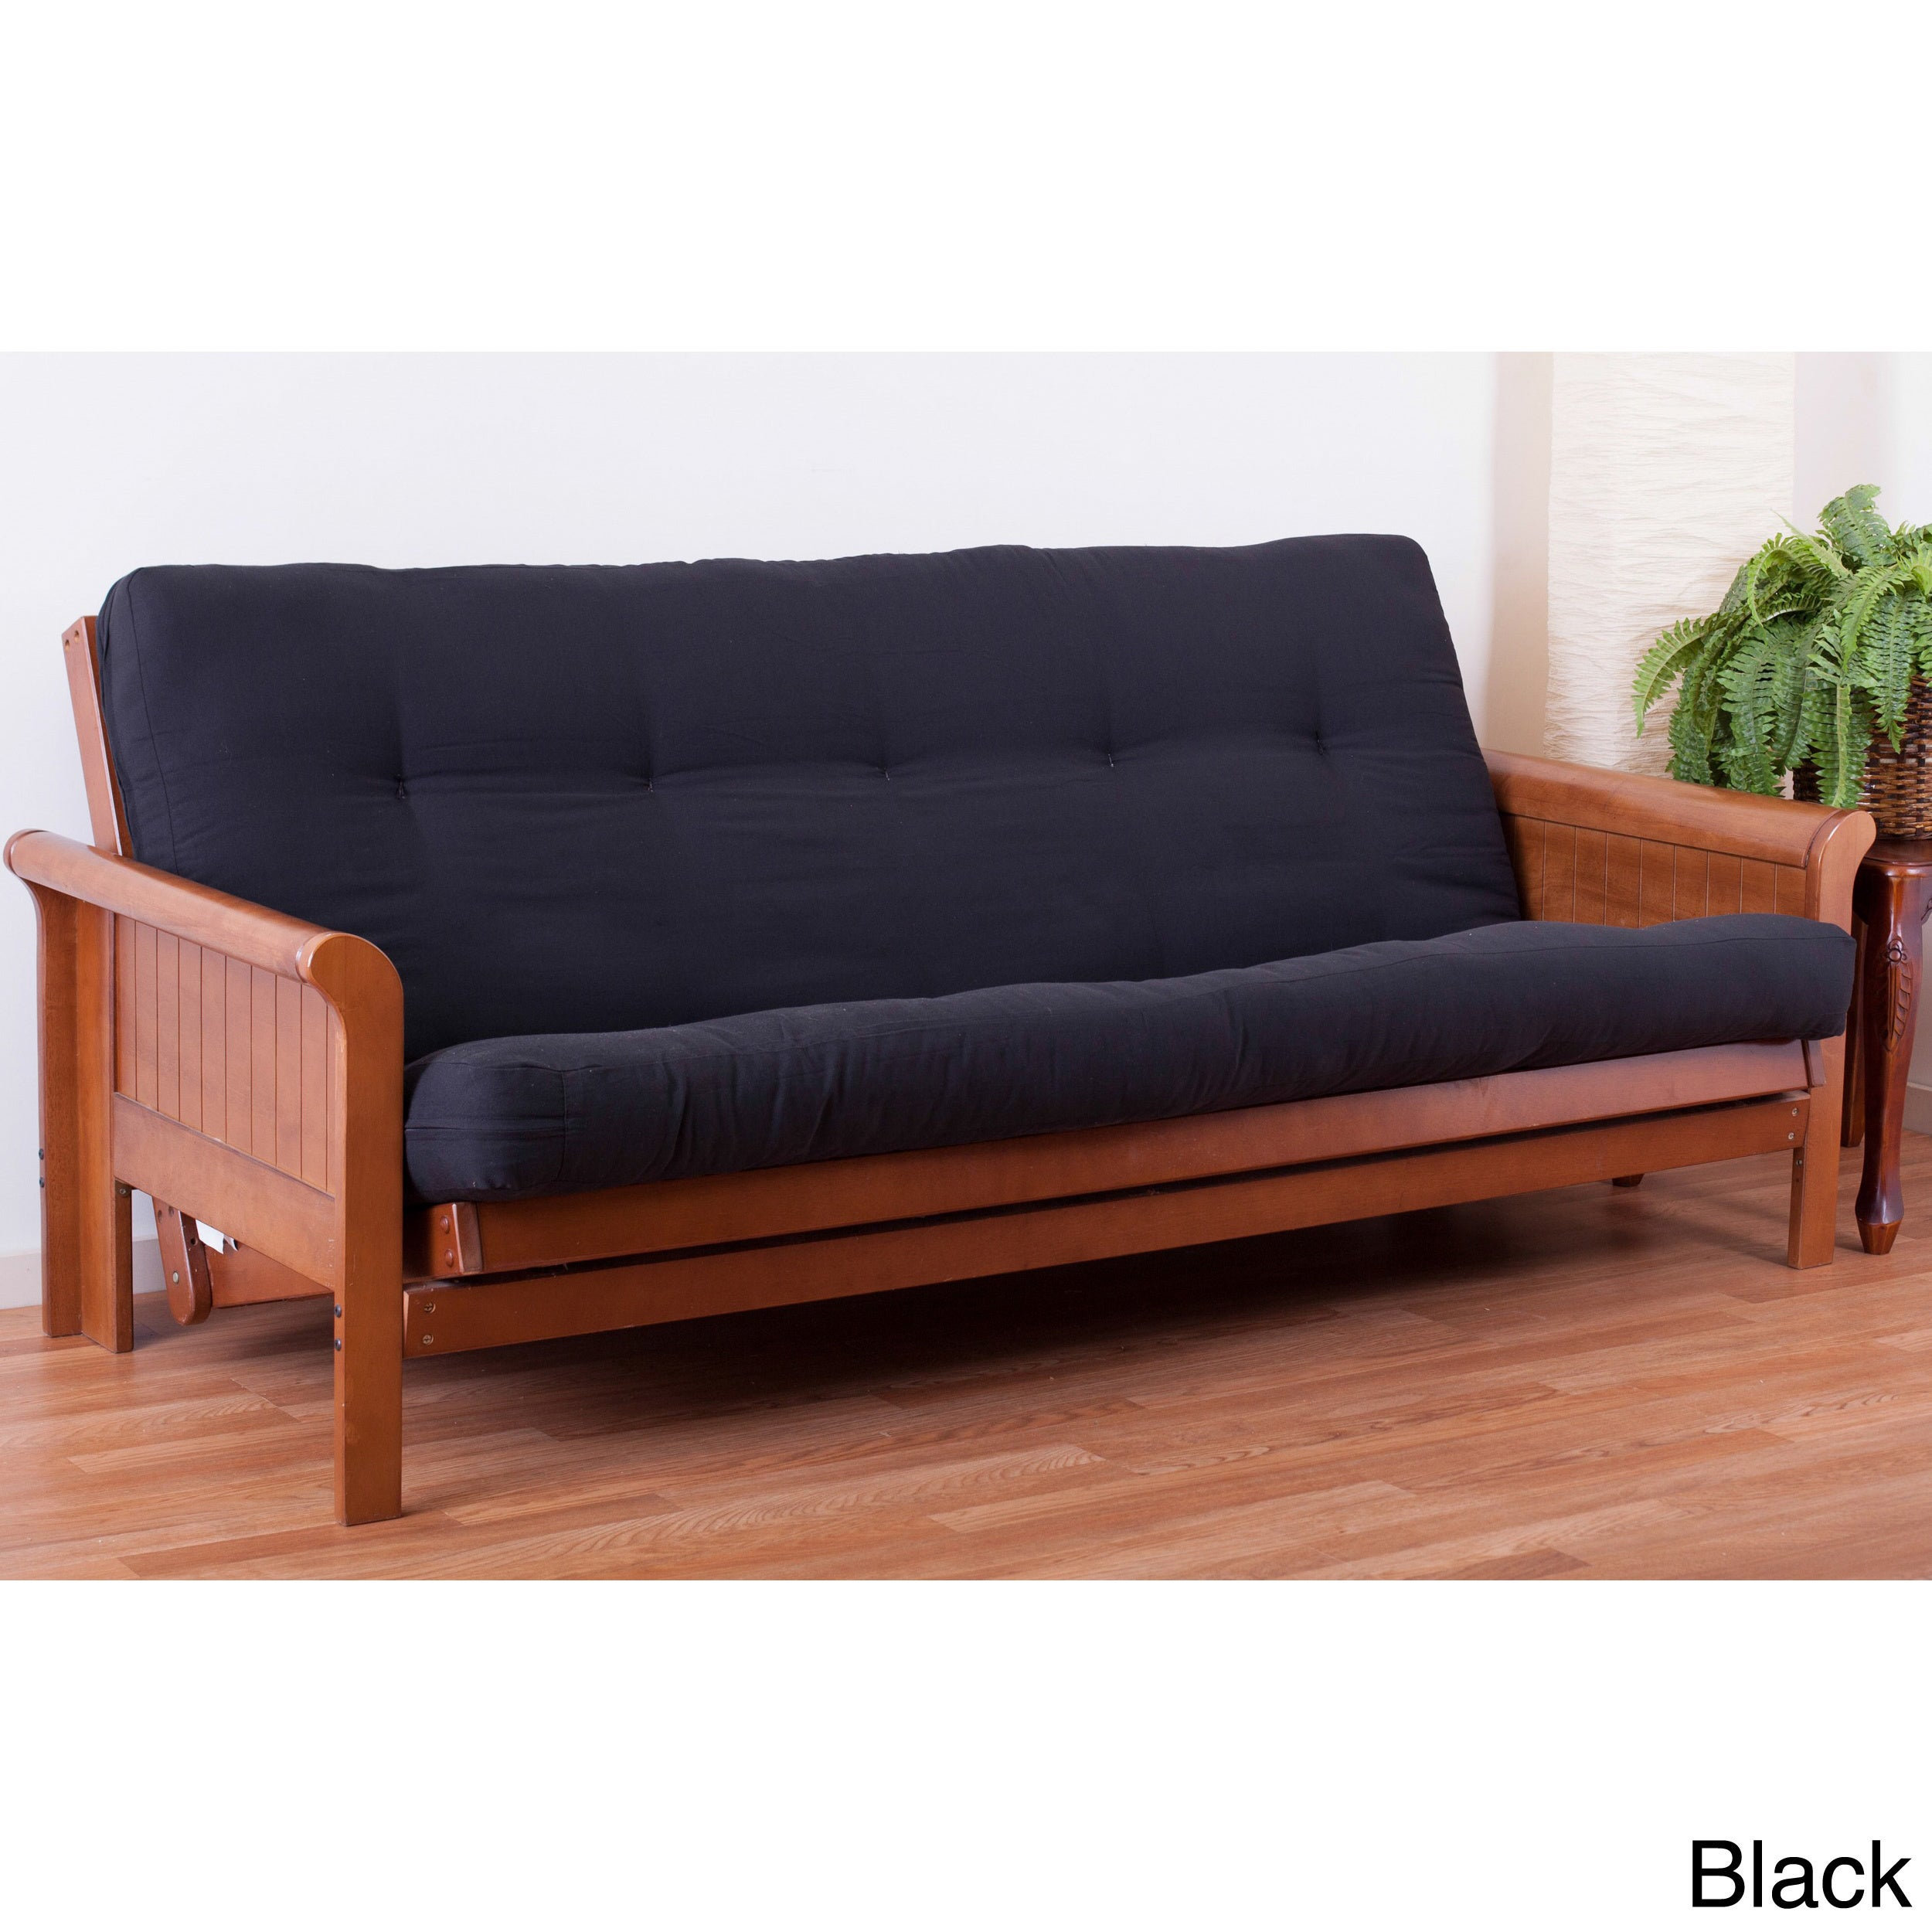 Tufted Cotton Foam Full size 6 inch Futon Mattress ly Free